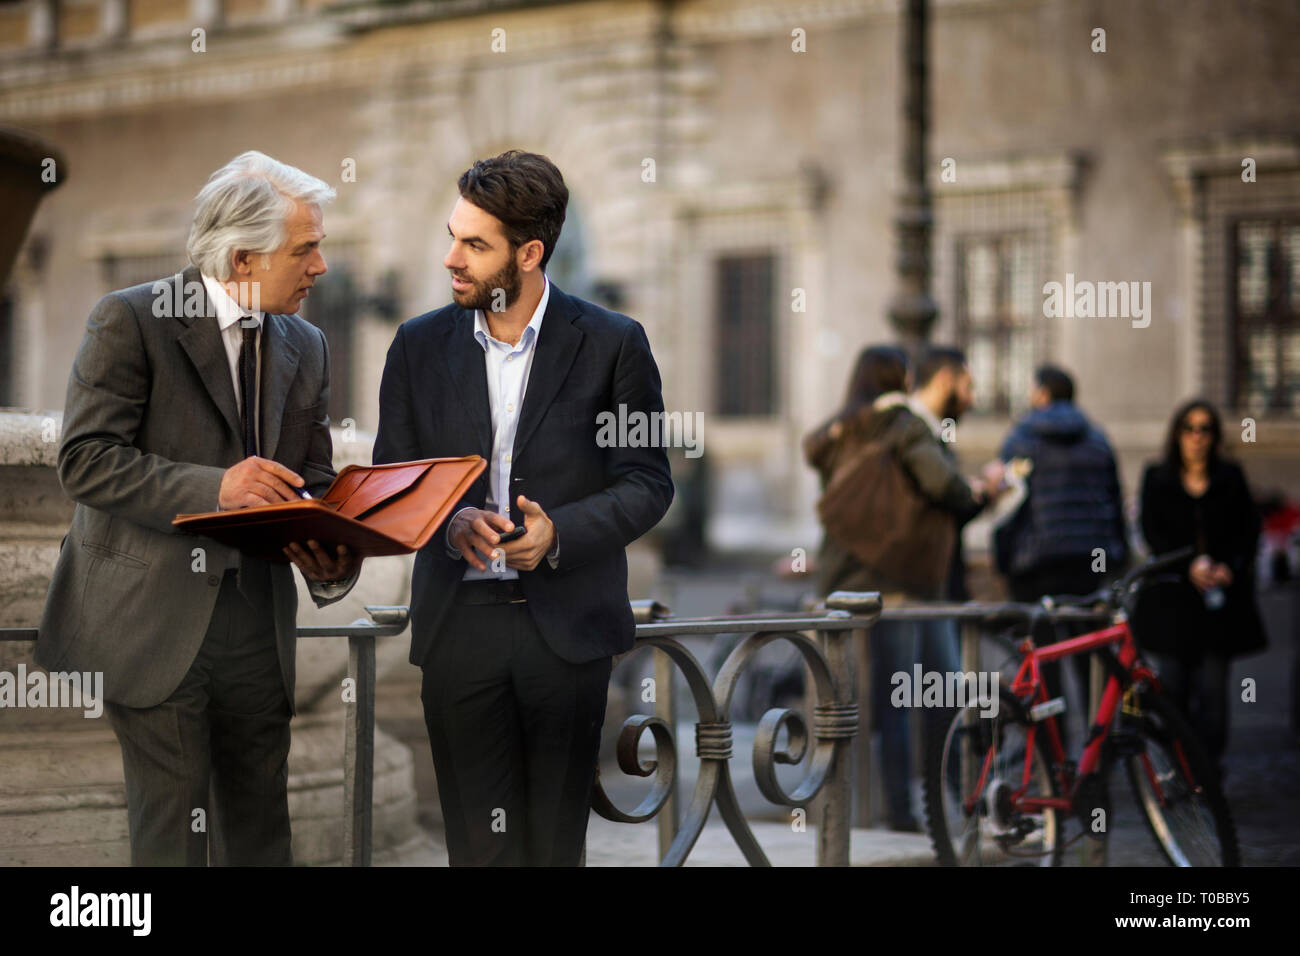 Mature businessman has a chance meeting with a young colleague while they are out in the city. - Stock Image